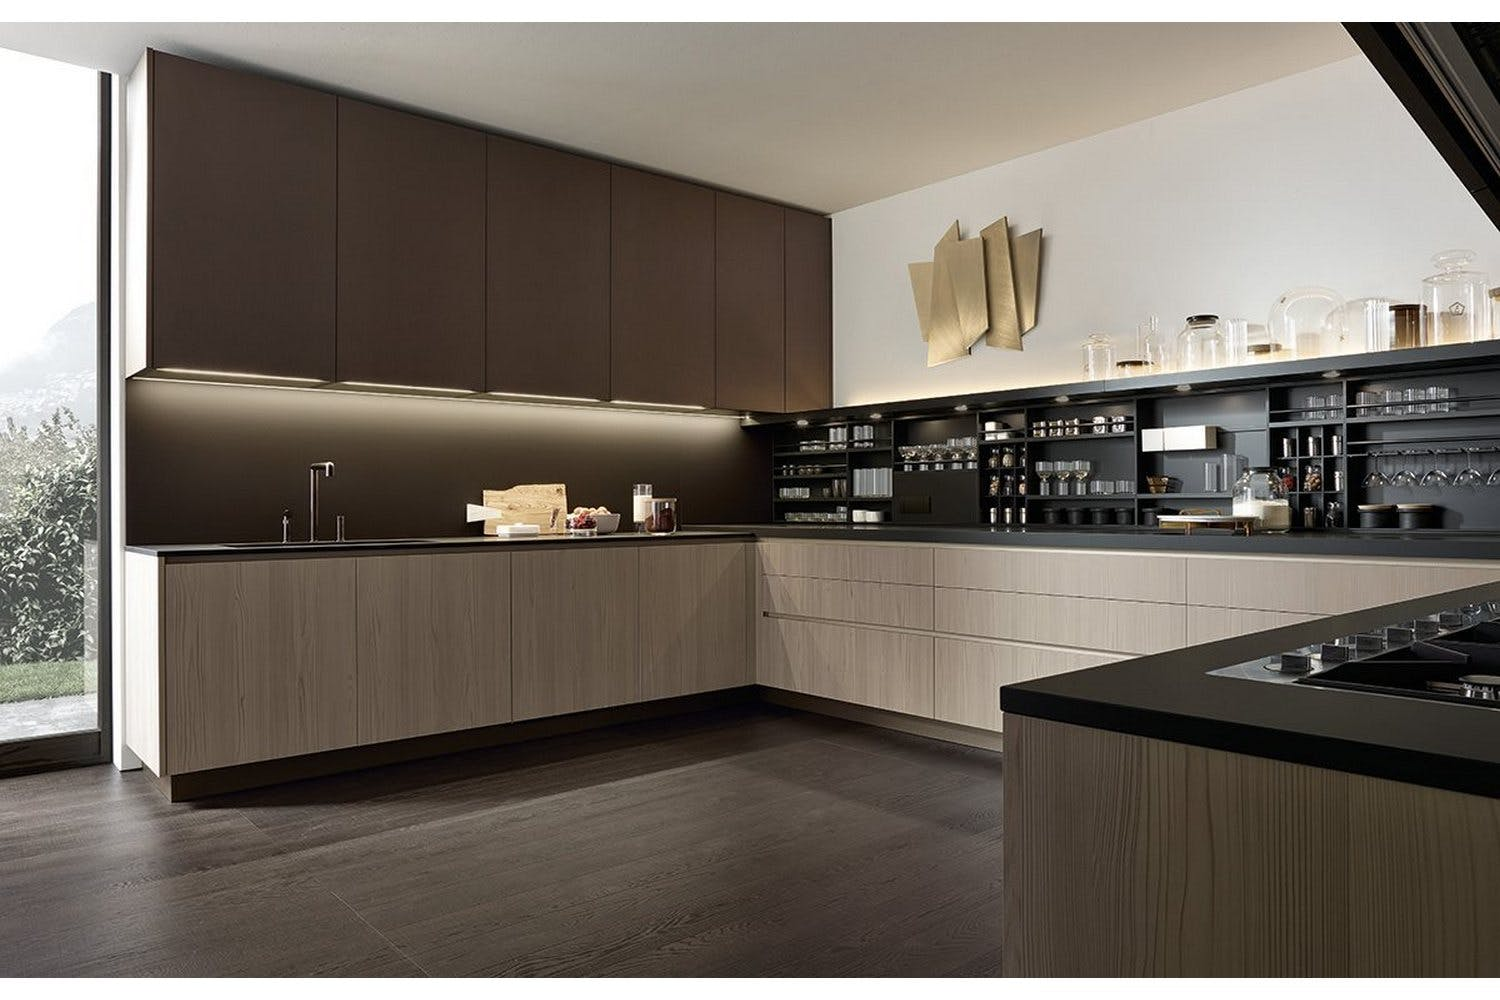 Alea kitchen by paolo piva r d varenna for poliform for Varenna cuisine